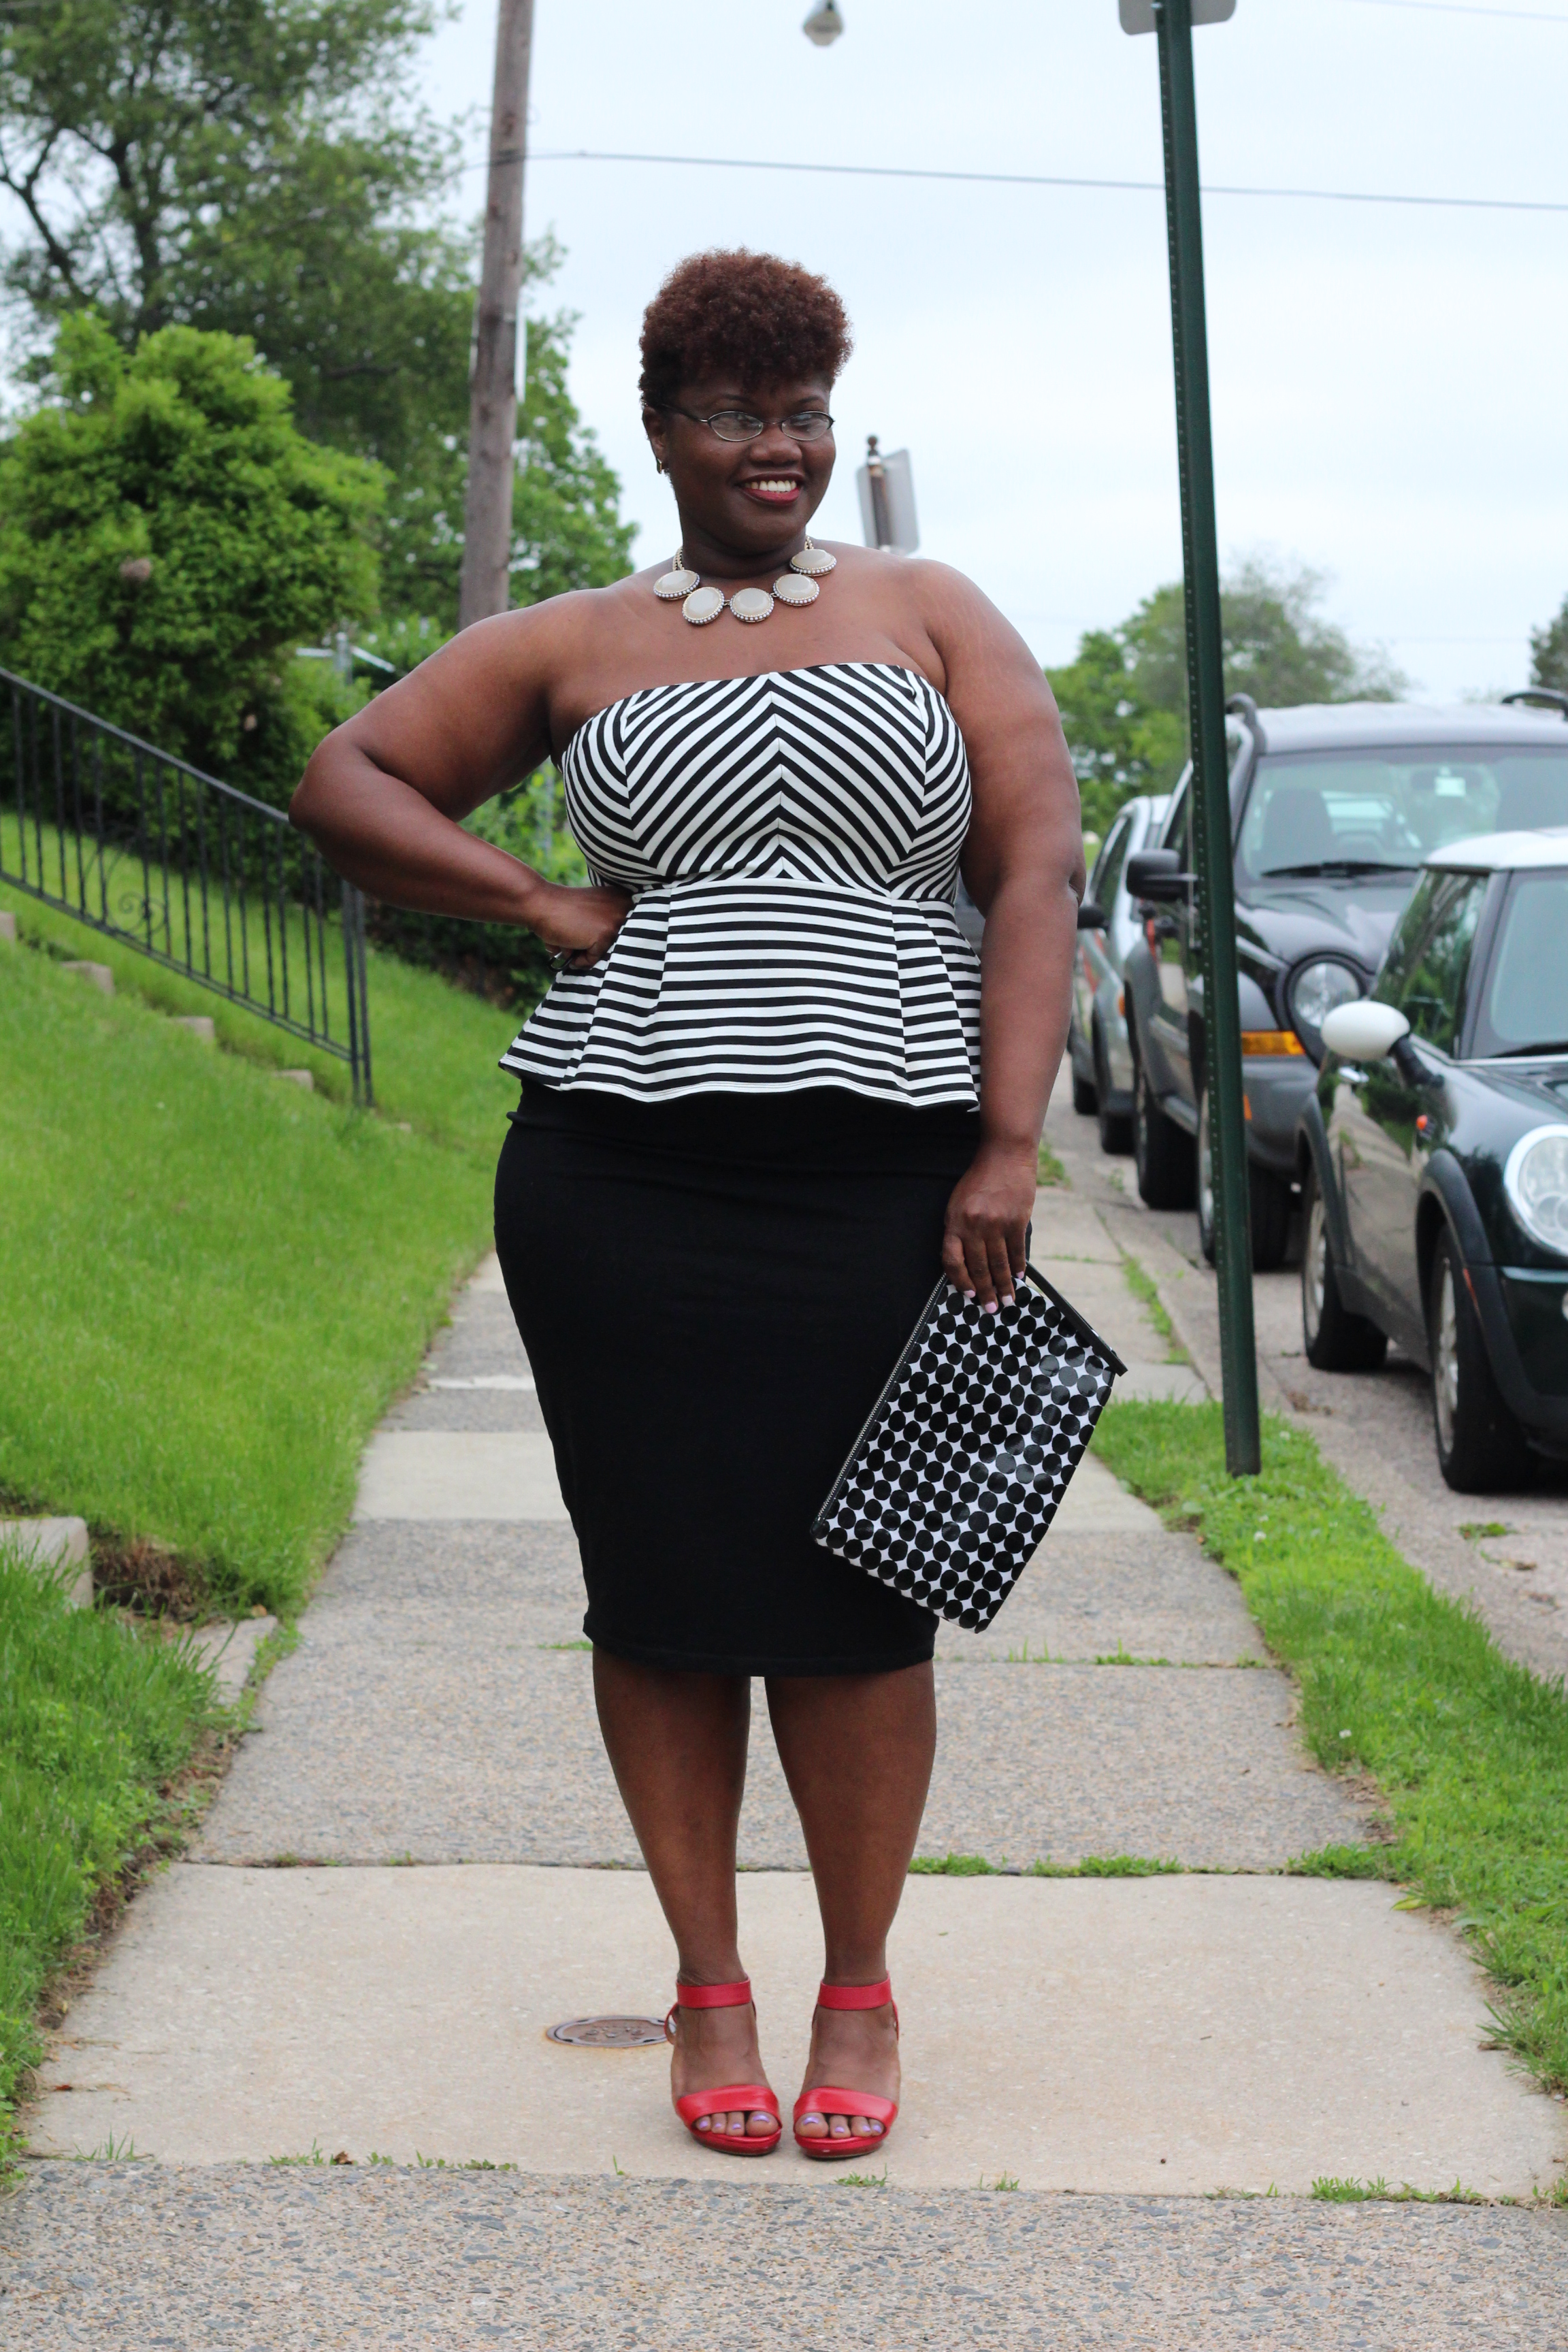 curvy women, curvy girls, forever 21+, forever 21 plus sizes, asos, asos curve, plus size skirts, plus size pencil skirts, nine west, color blocking, black & white, banana republic clutches, clutches, 40+ blogs, black blogs, black curvy blogs, curvy bloggers,